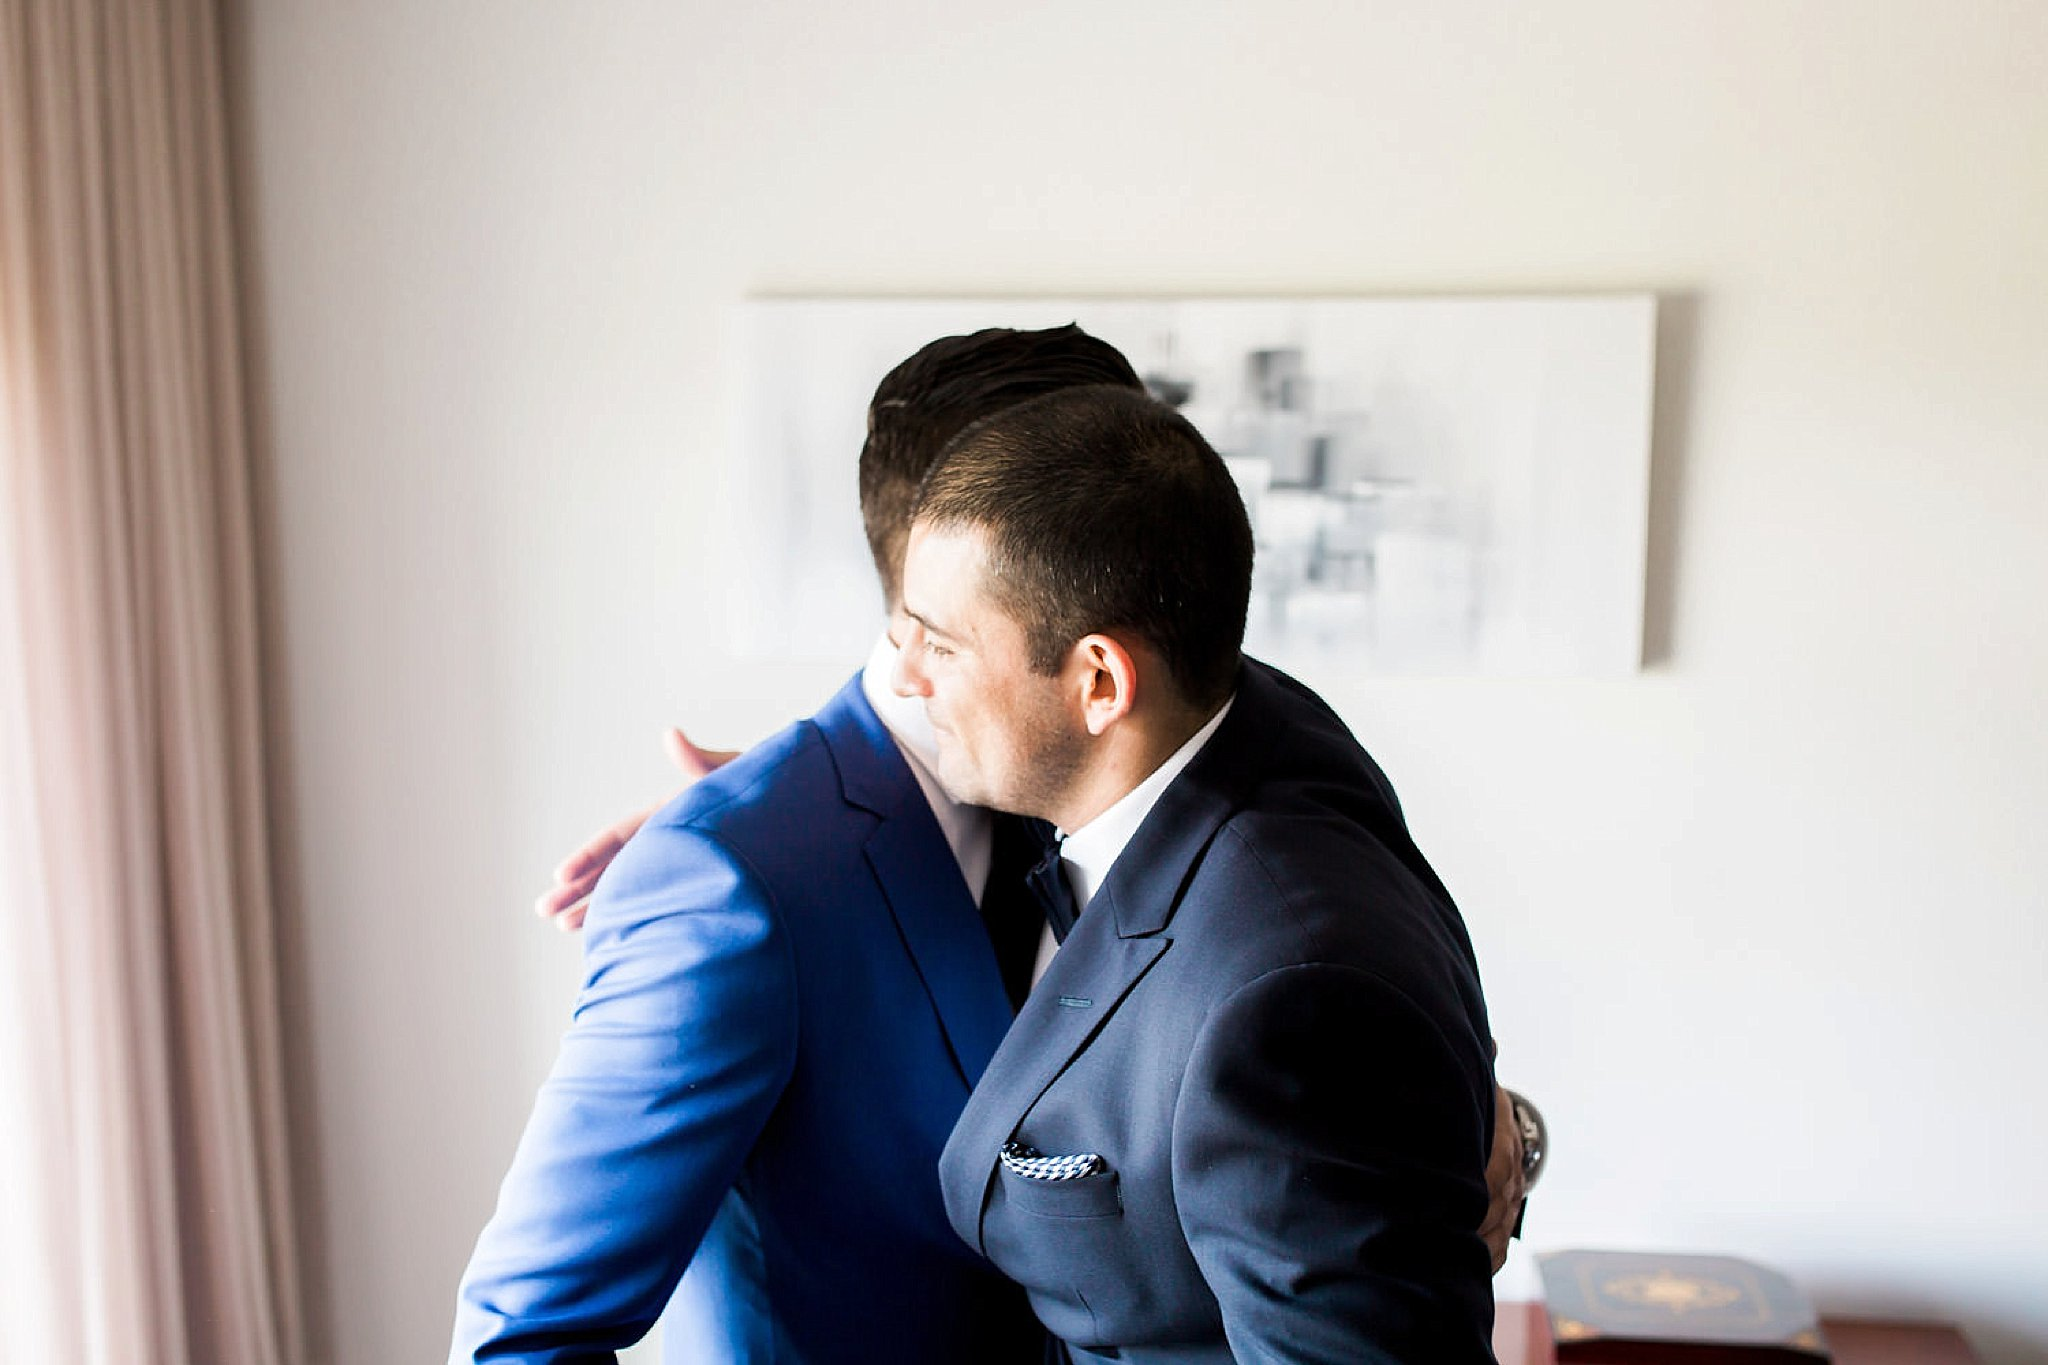 Doctors House Wedding, Toronto Wedding Photographer, Klienburg Wedding